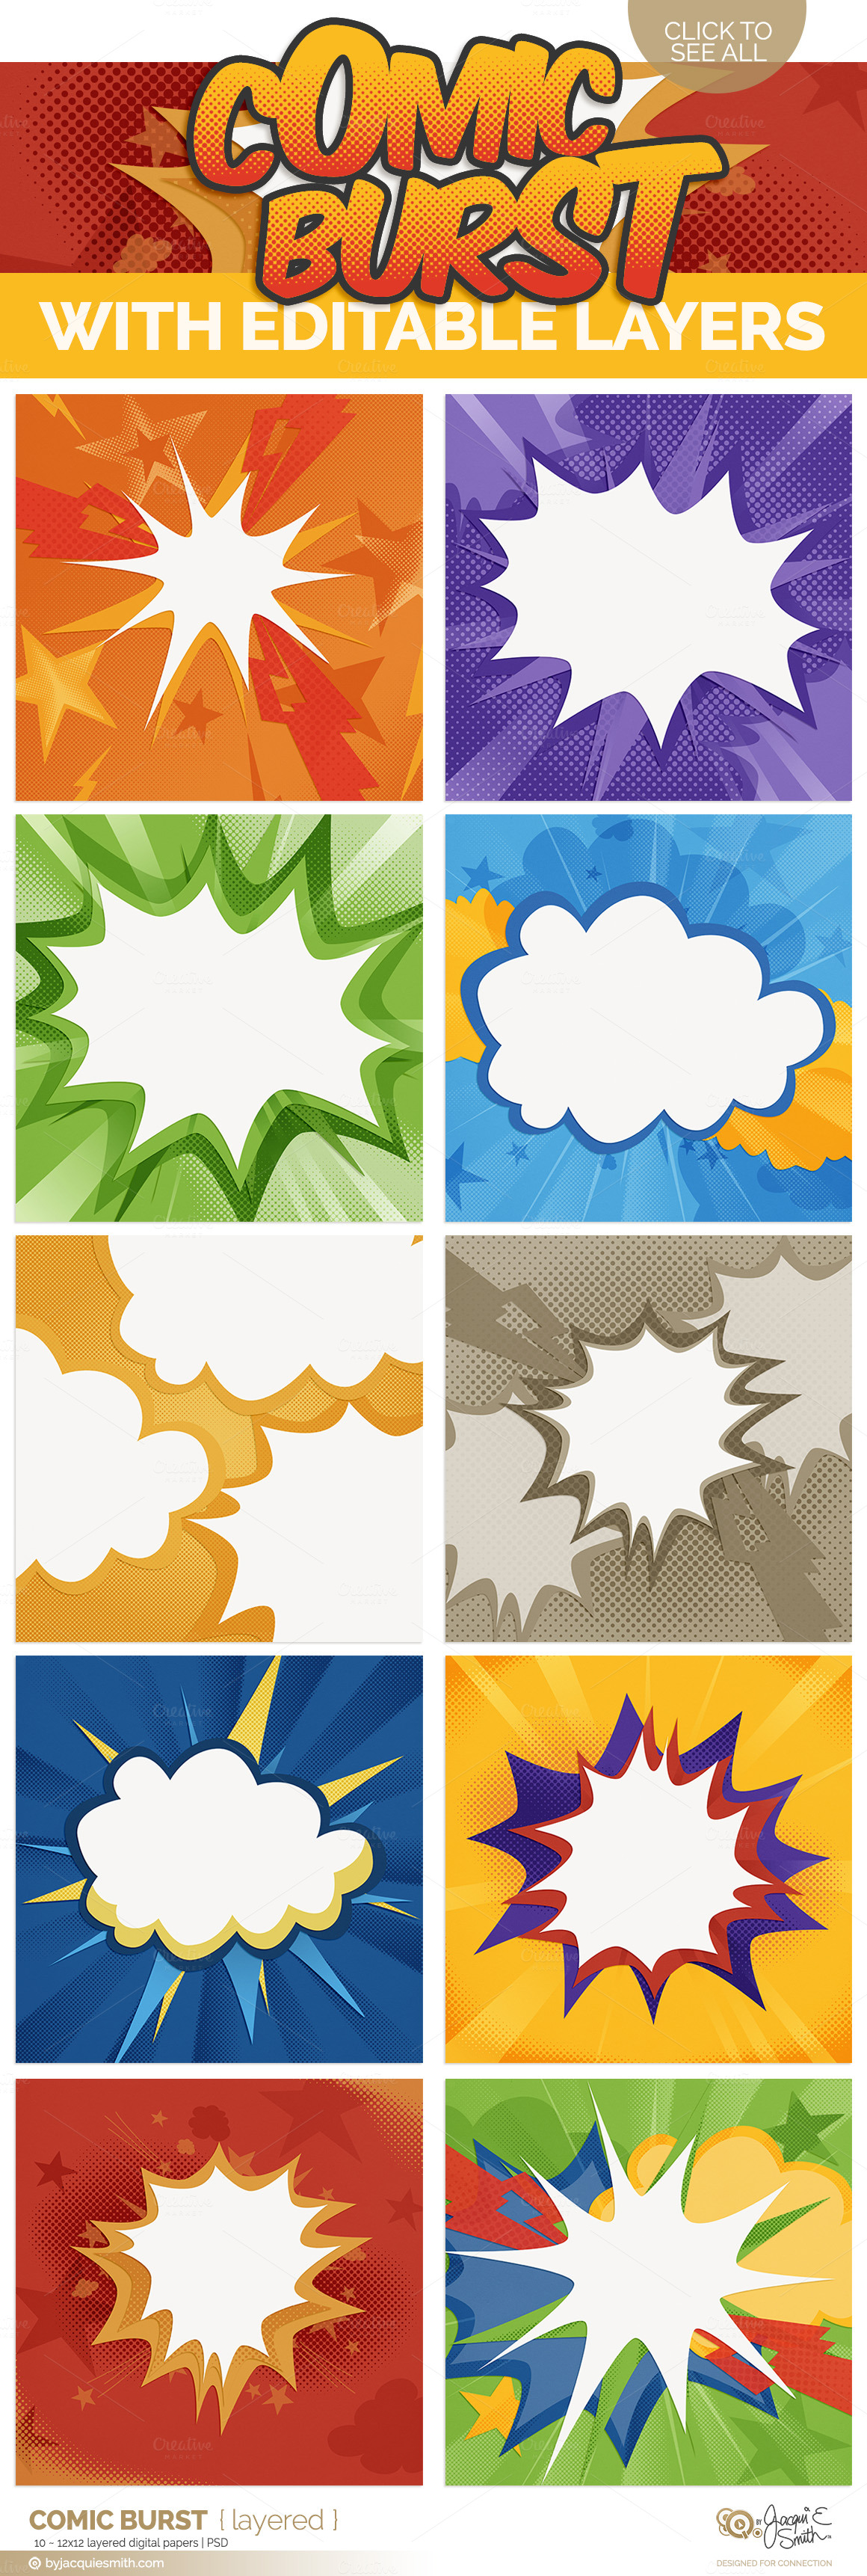 comic book page template psd - comic burst layered psd backgrounds templates on